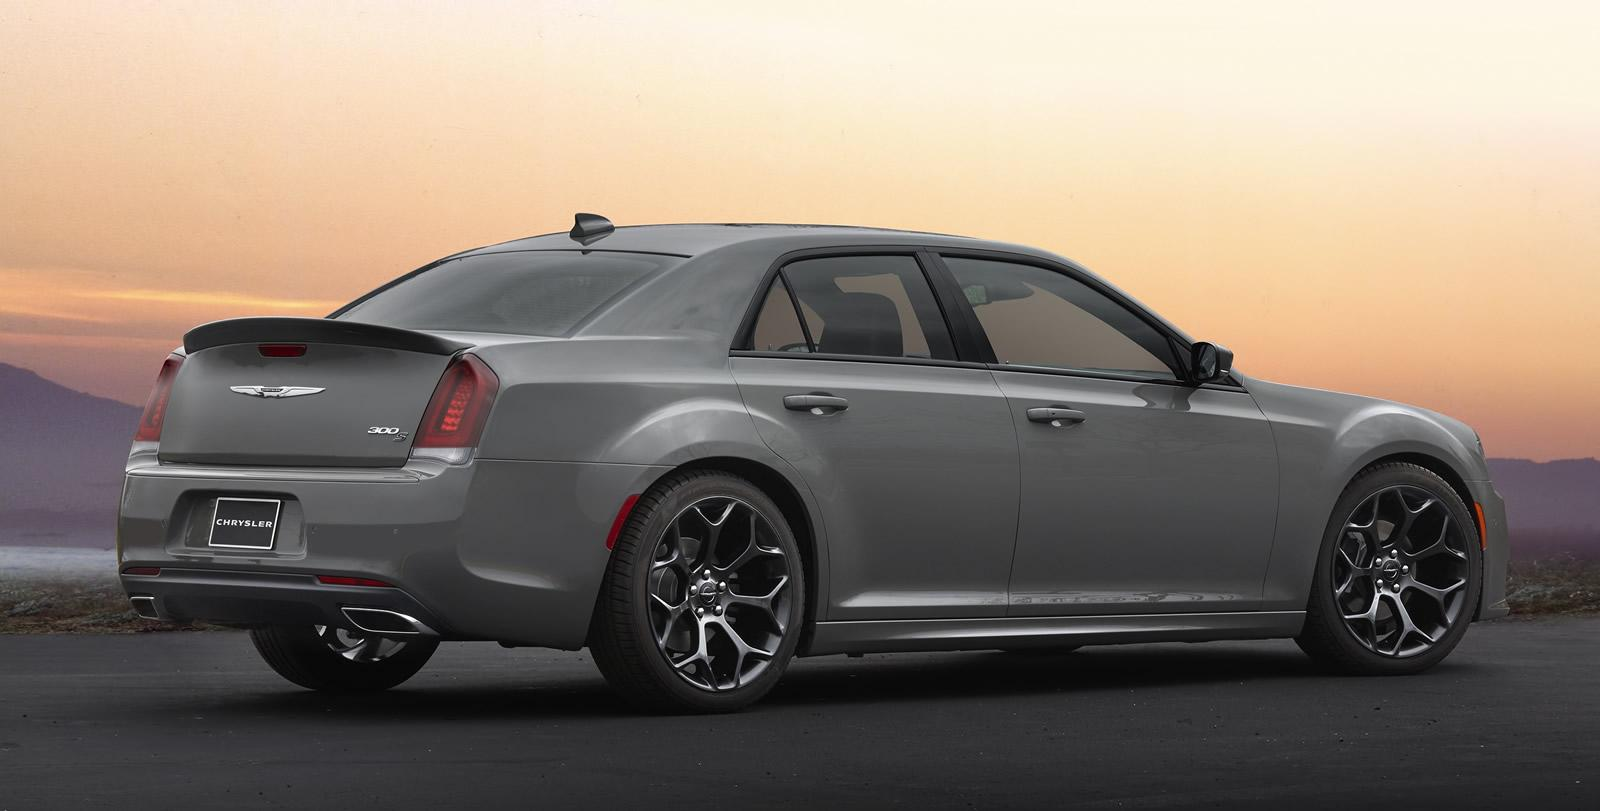 2017 Chrysler 300s Sport Earance Package